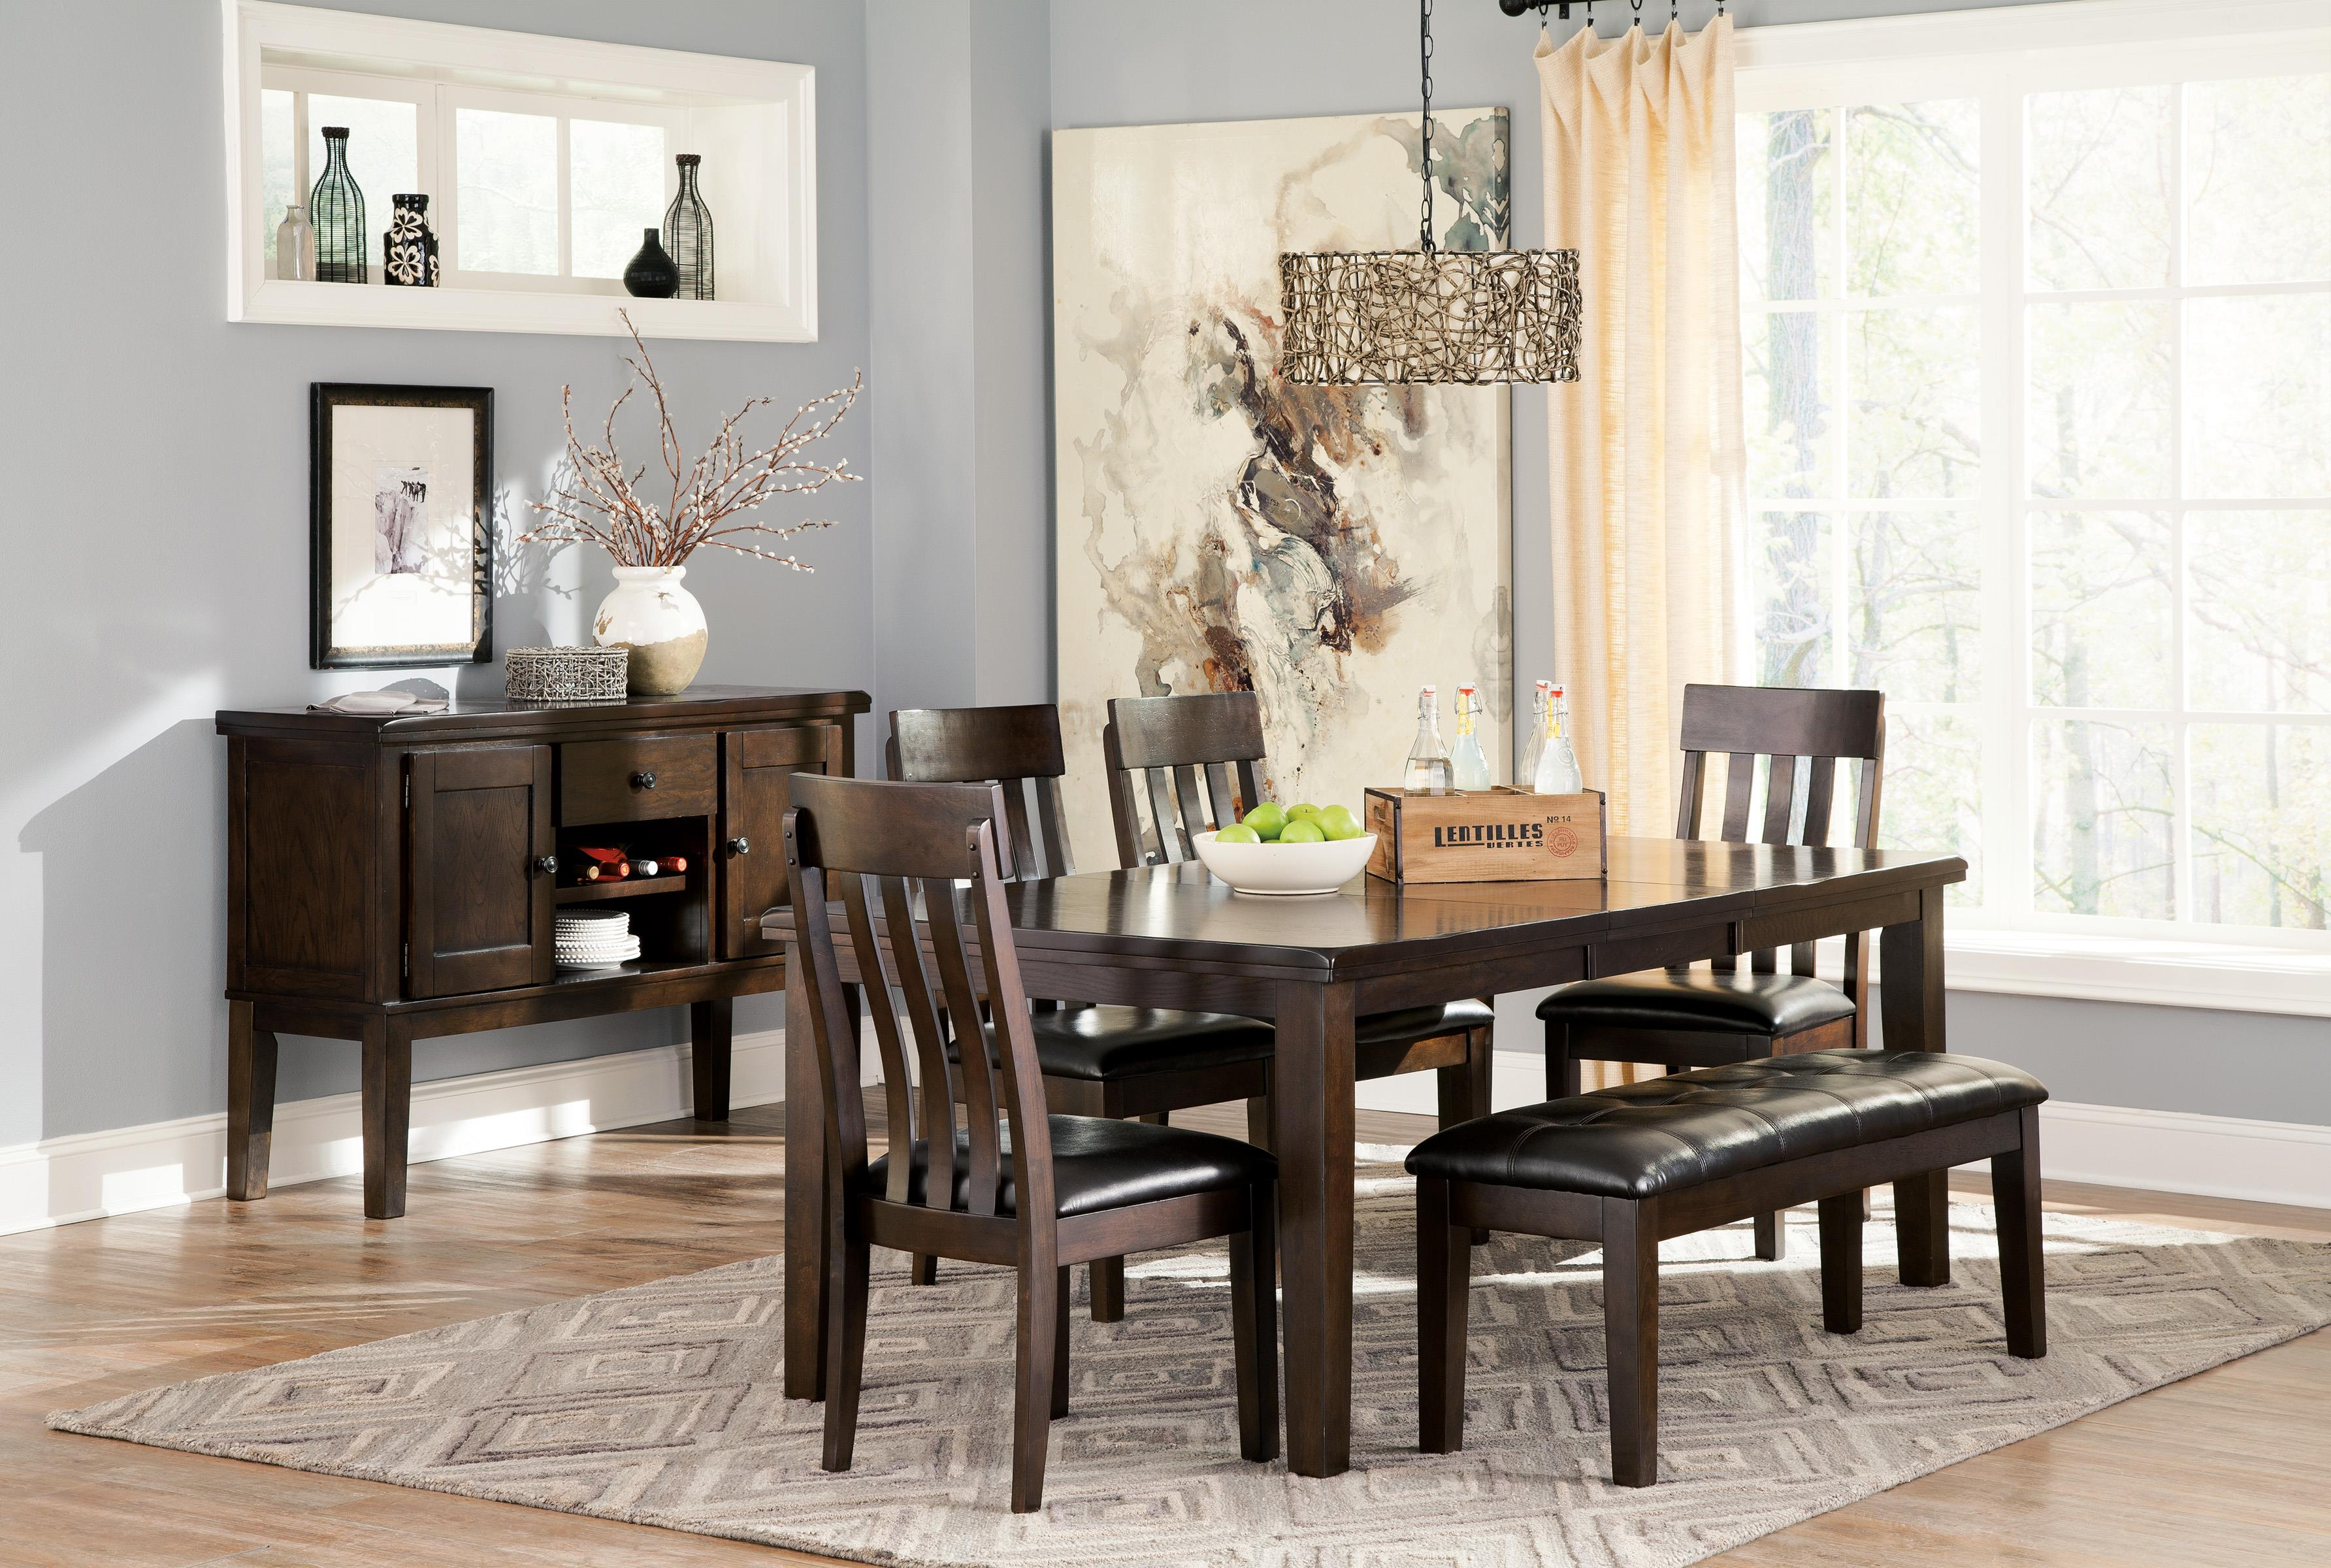 Signature Design by Ashley Haddigan Rectangular Dining Room Table ...